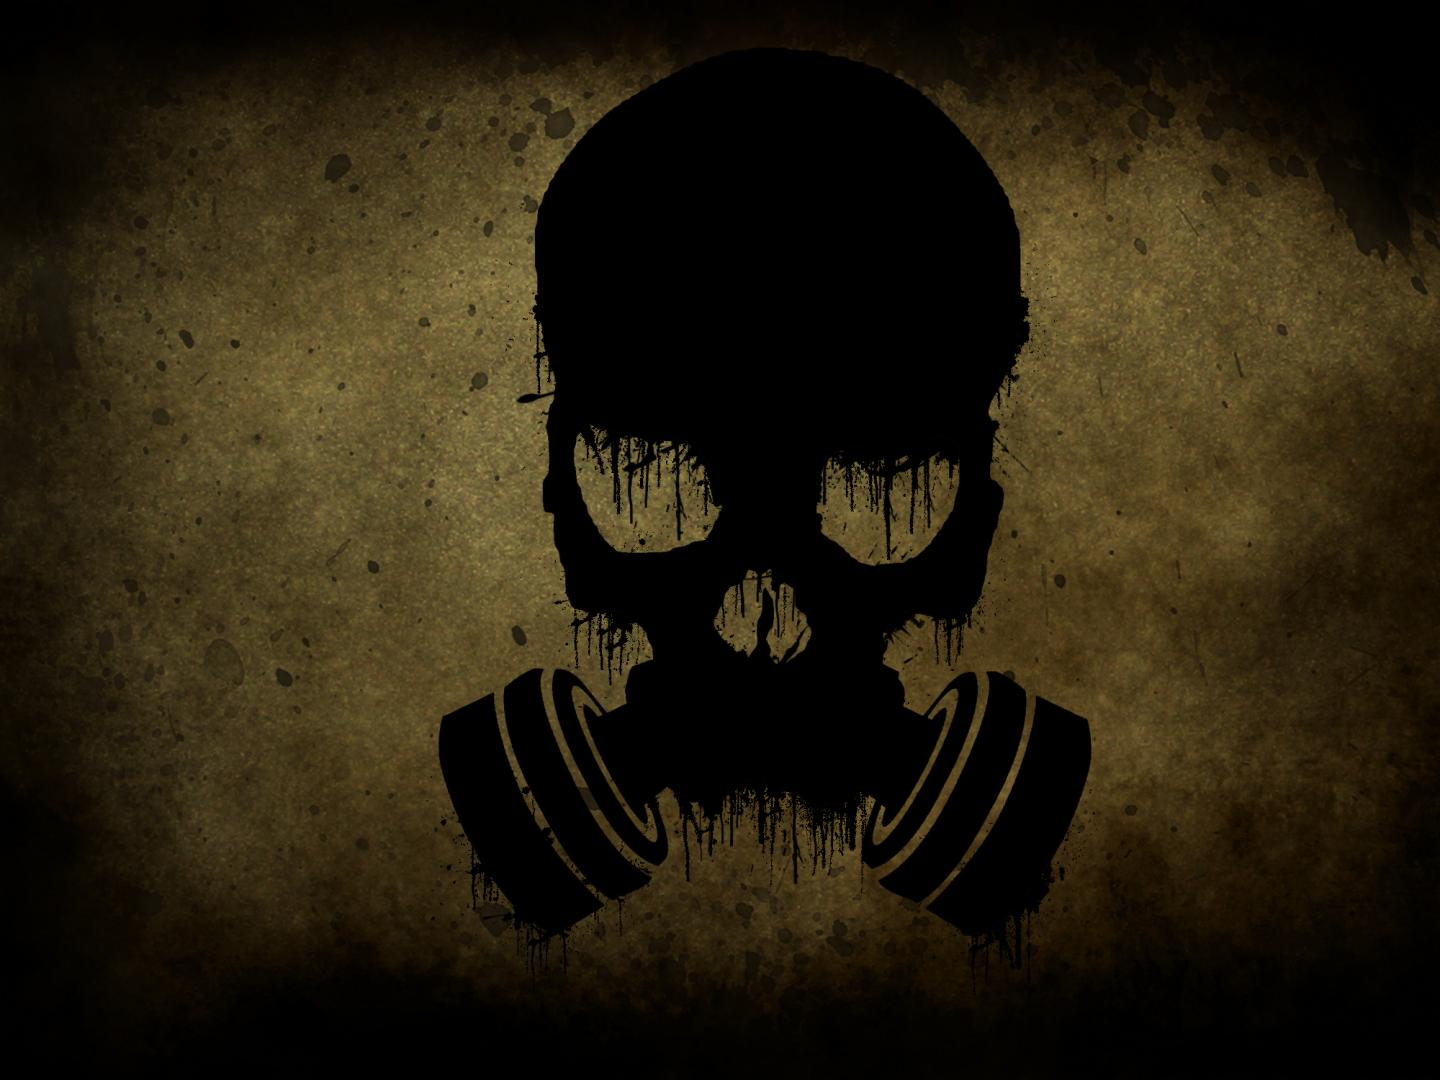 gas_mask_skull_by_greatjester-d31f0ky.jpg